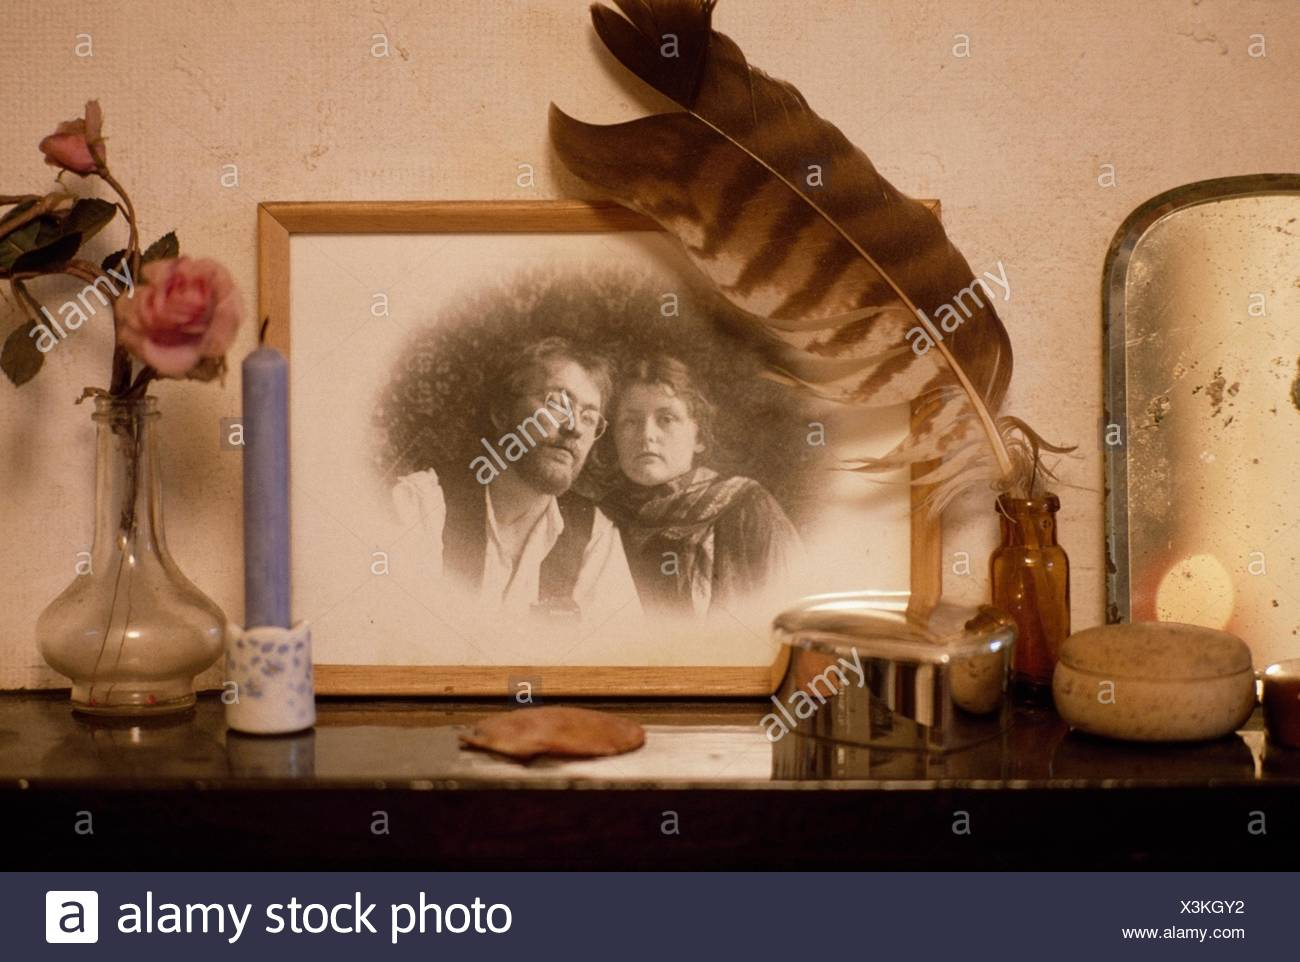 Objects On A Mantel; Ireland - Stock Image